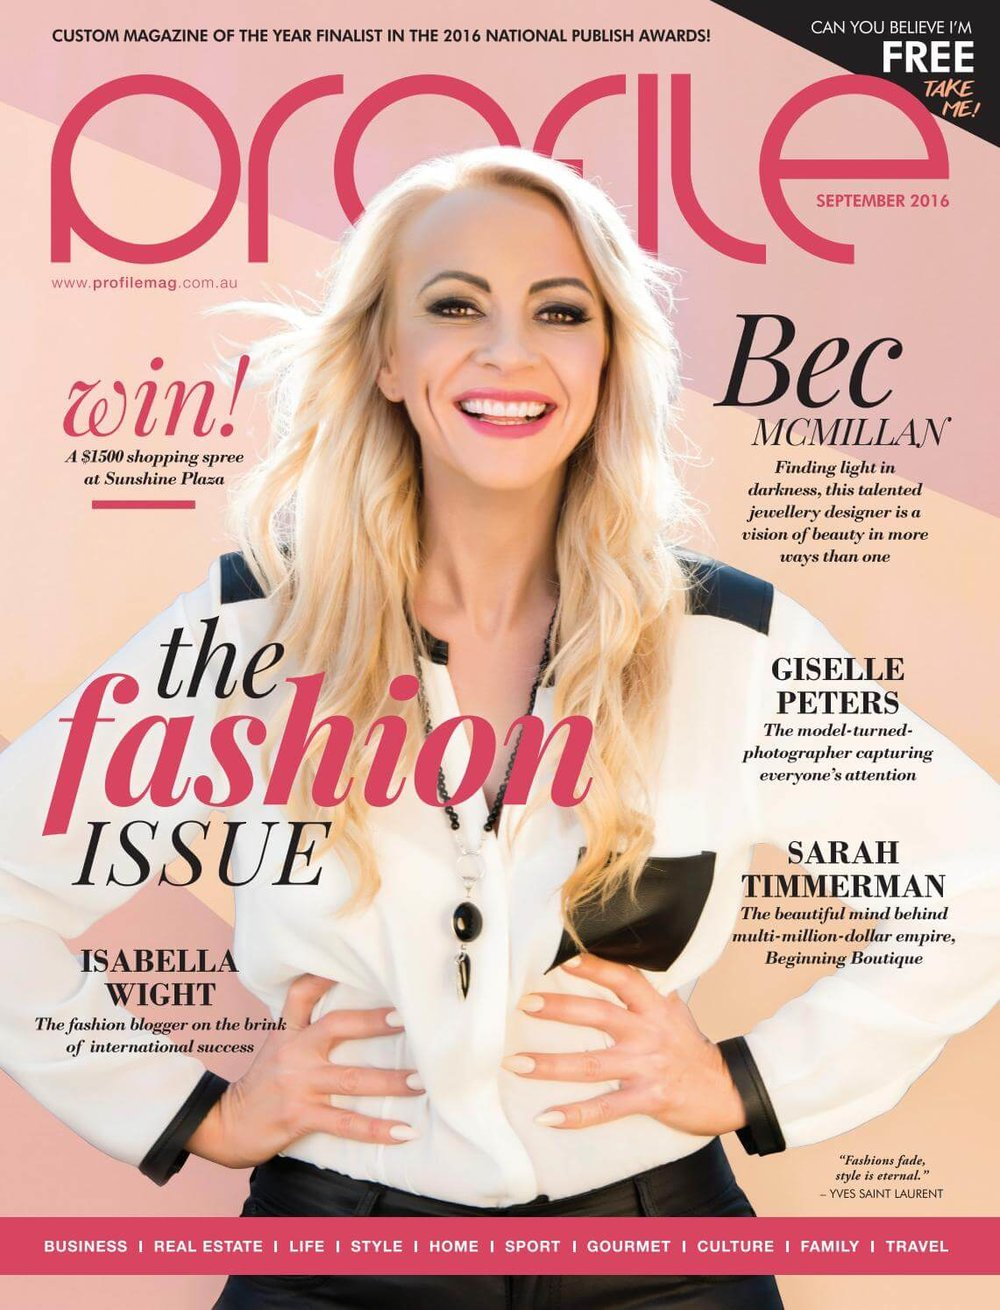 Profile Mag Cover.jpg